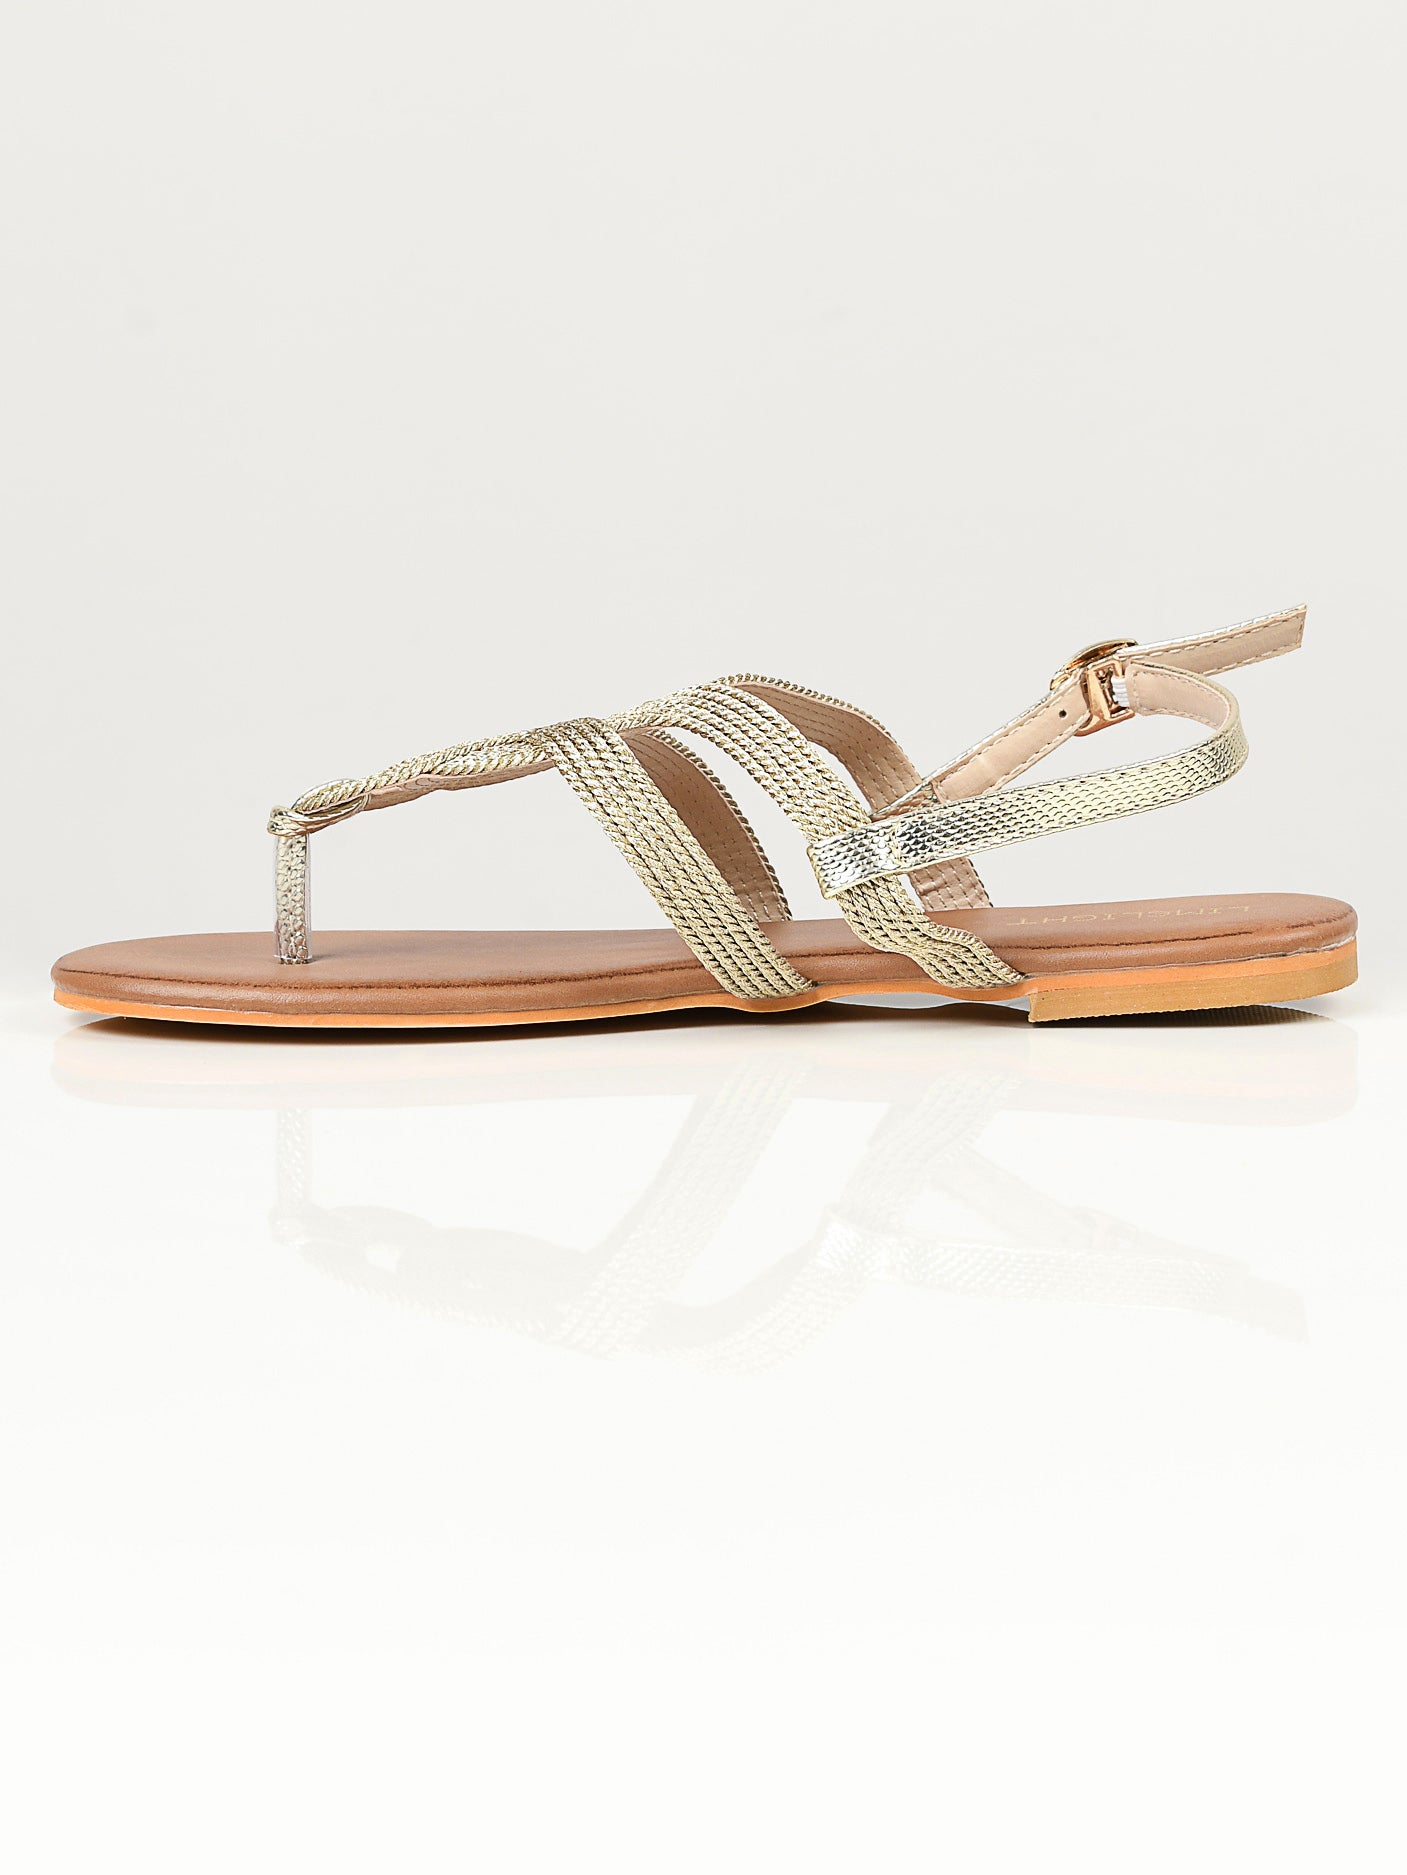 Shimmery Sandals - Gold